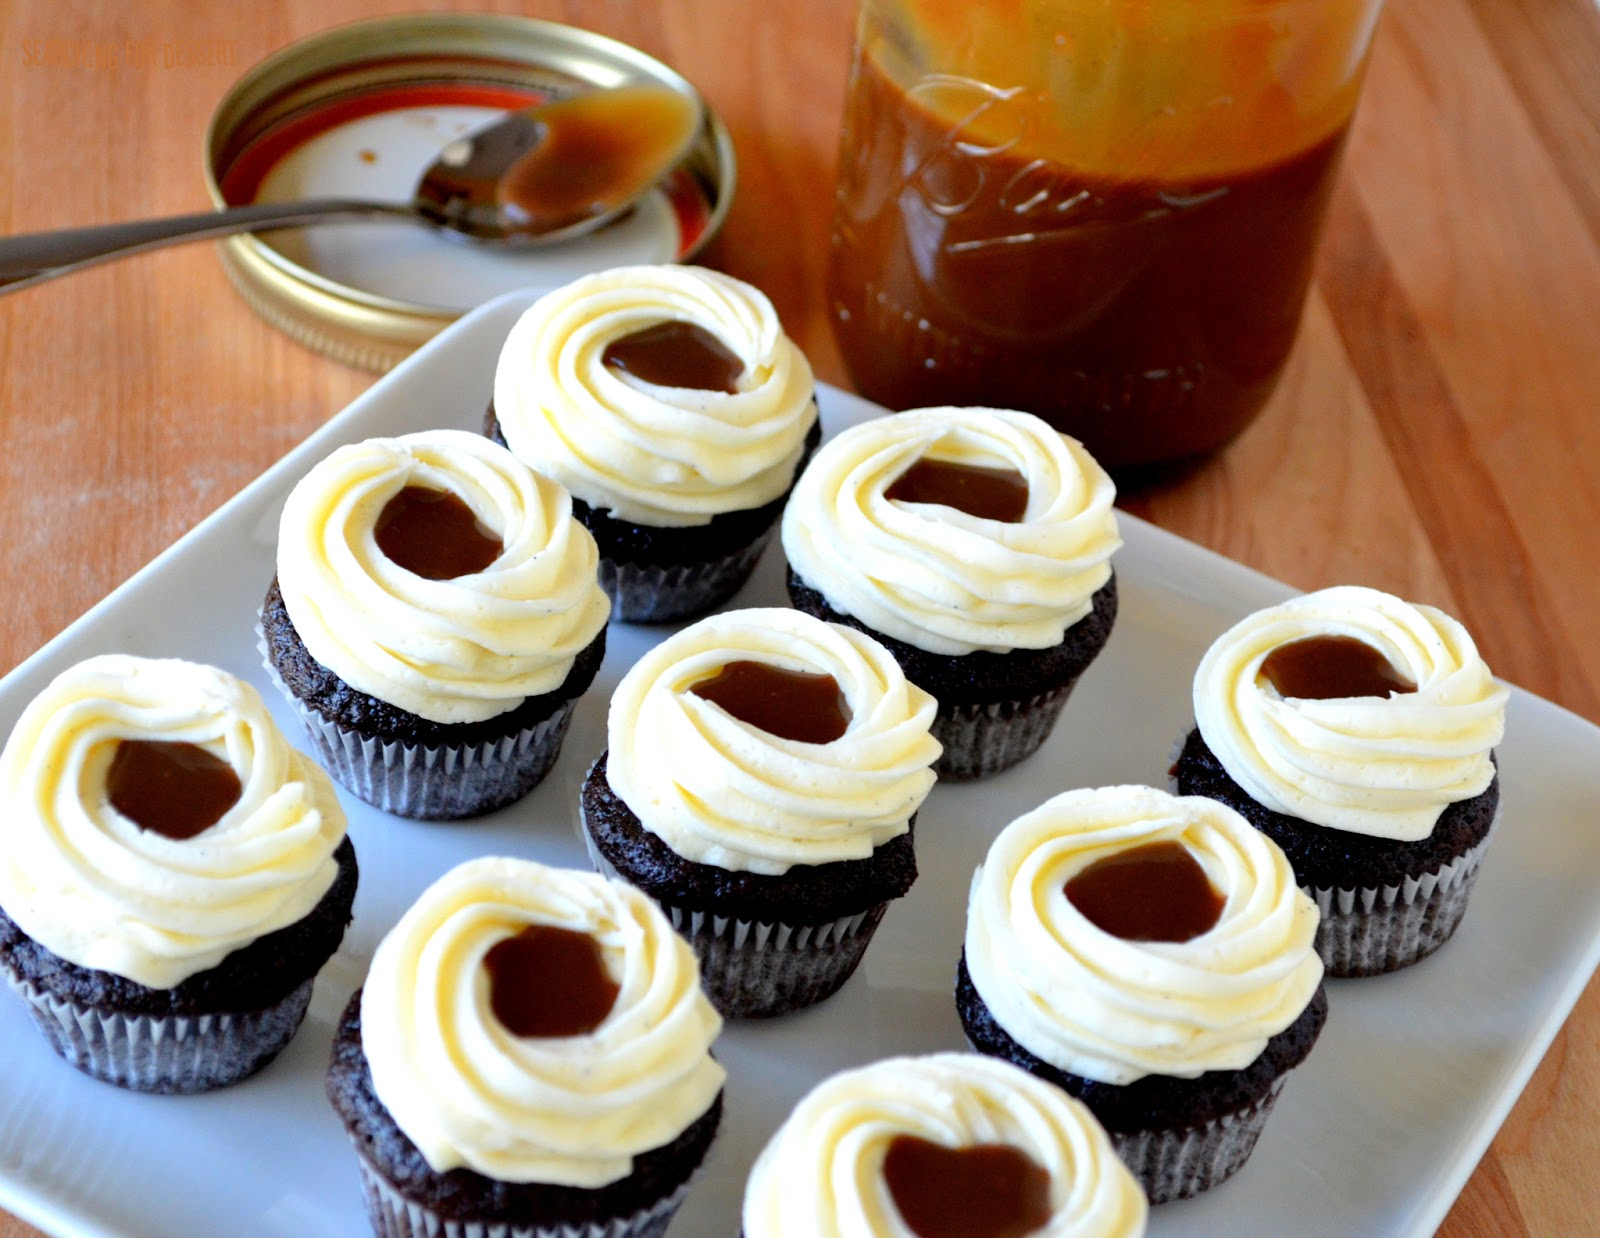 Chocolate Cupcakes with Vanilla Bean Frosting & Caramel | Searching ...